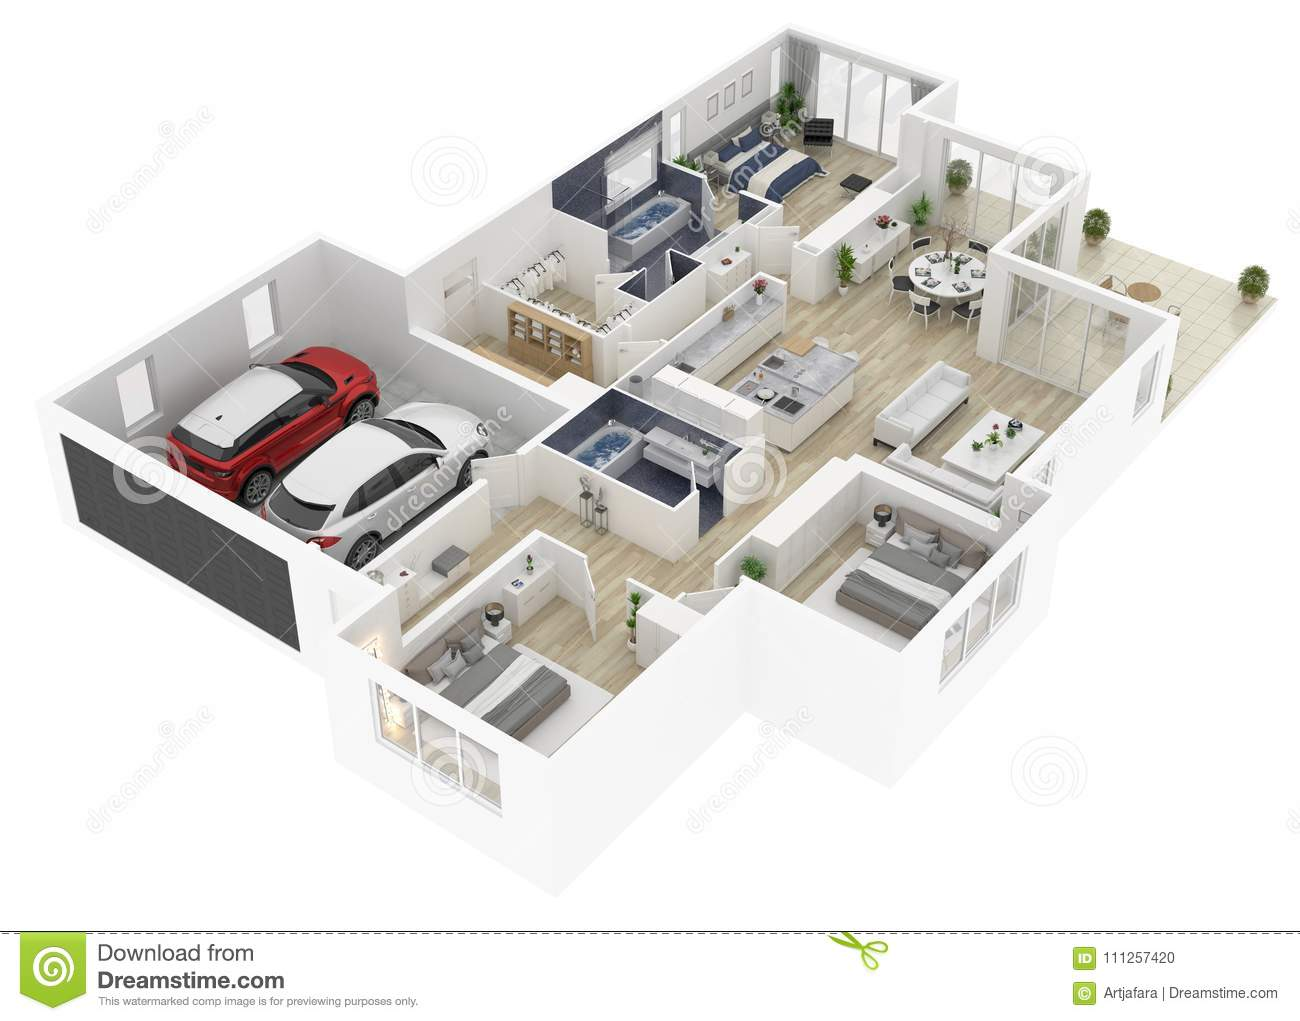 Floor Plan Of A House Top View 3d Illustration Stock Illustration